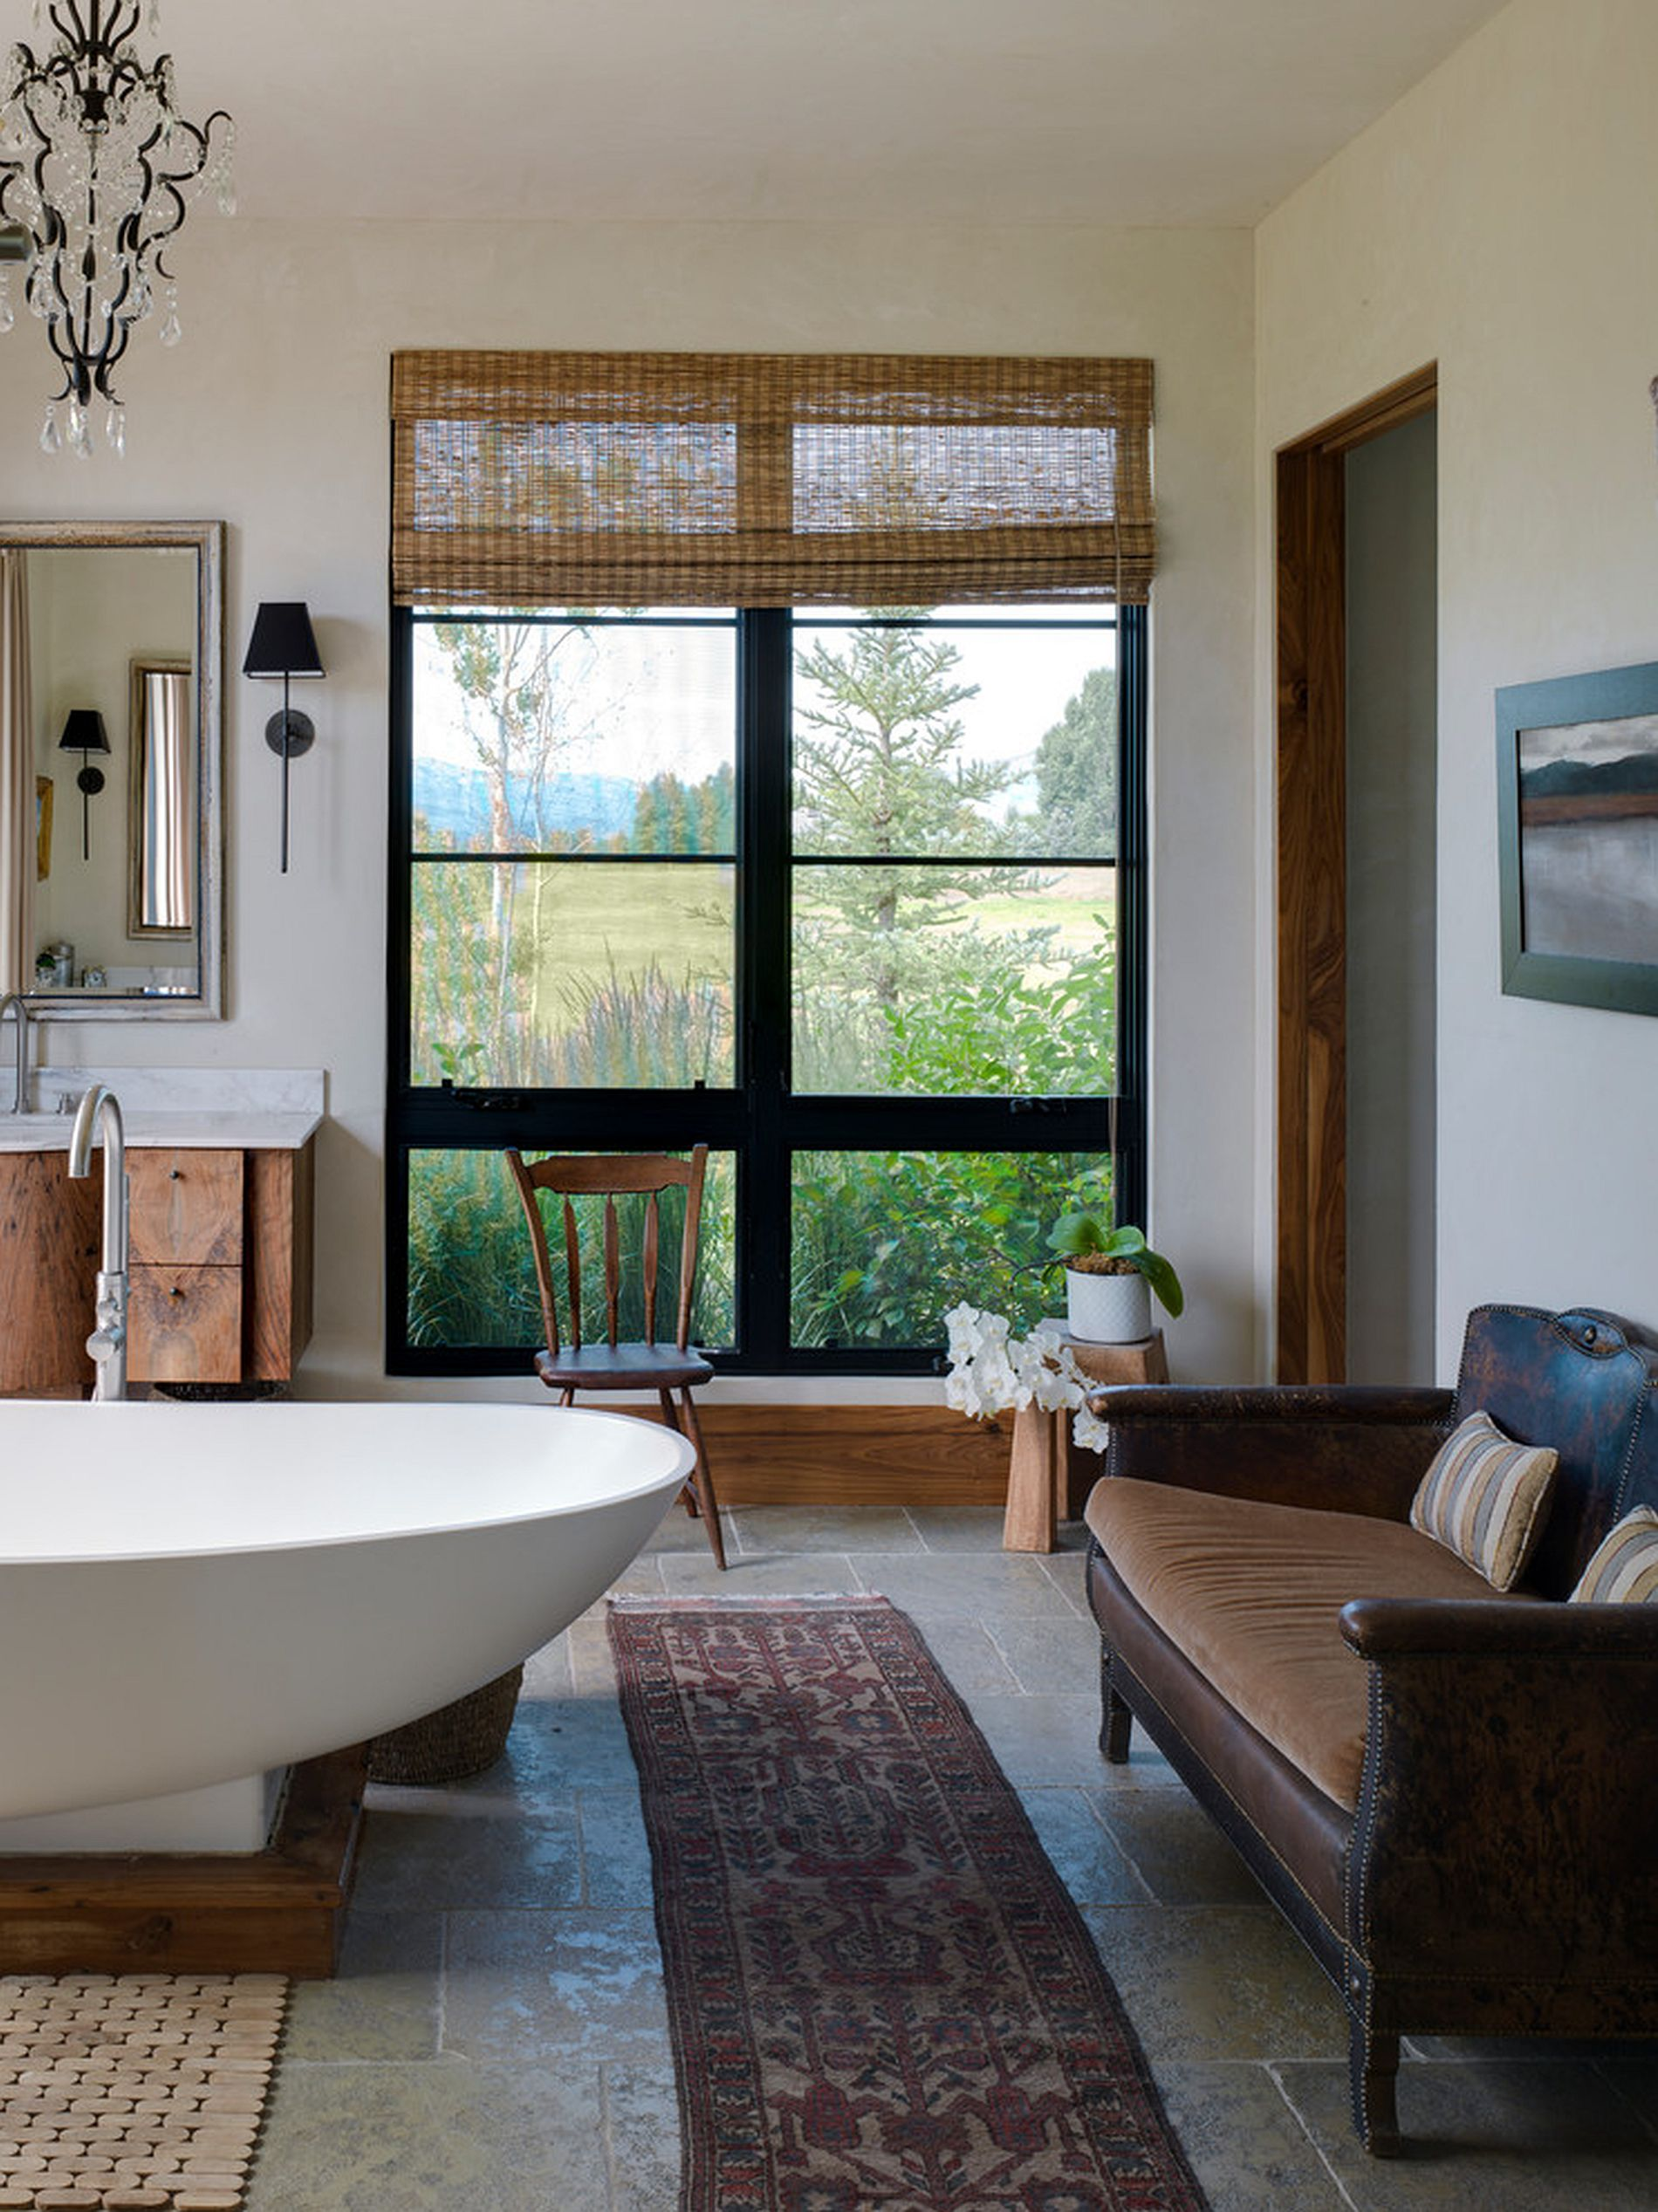 Turn the bathroom into an extension of your living space with cool décor [Design: Snake River Interiors]